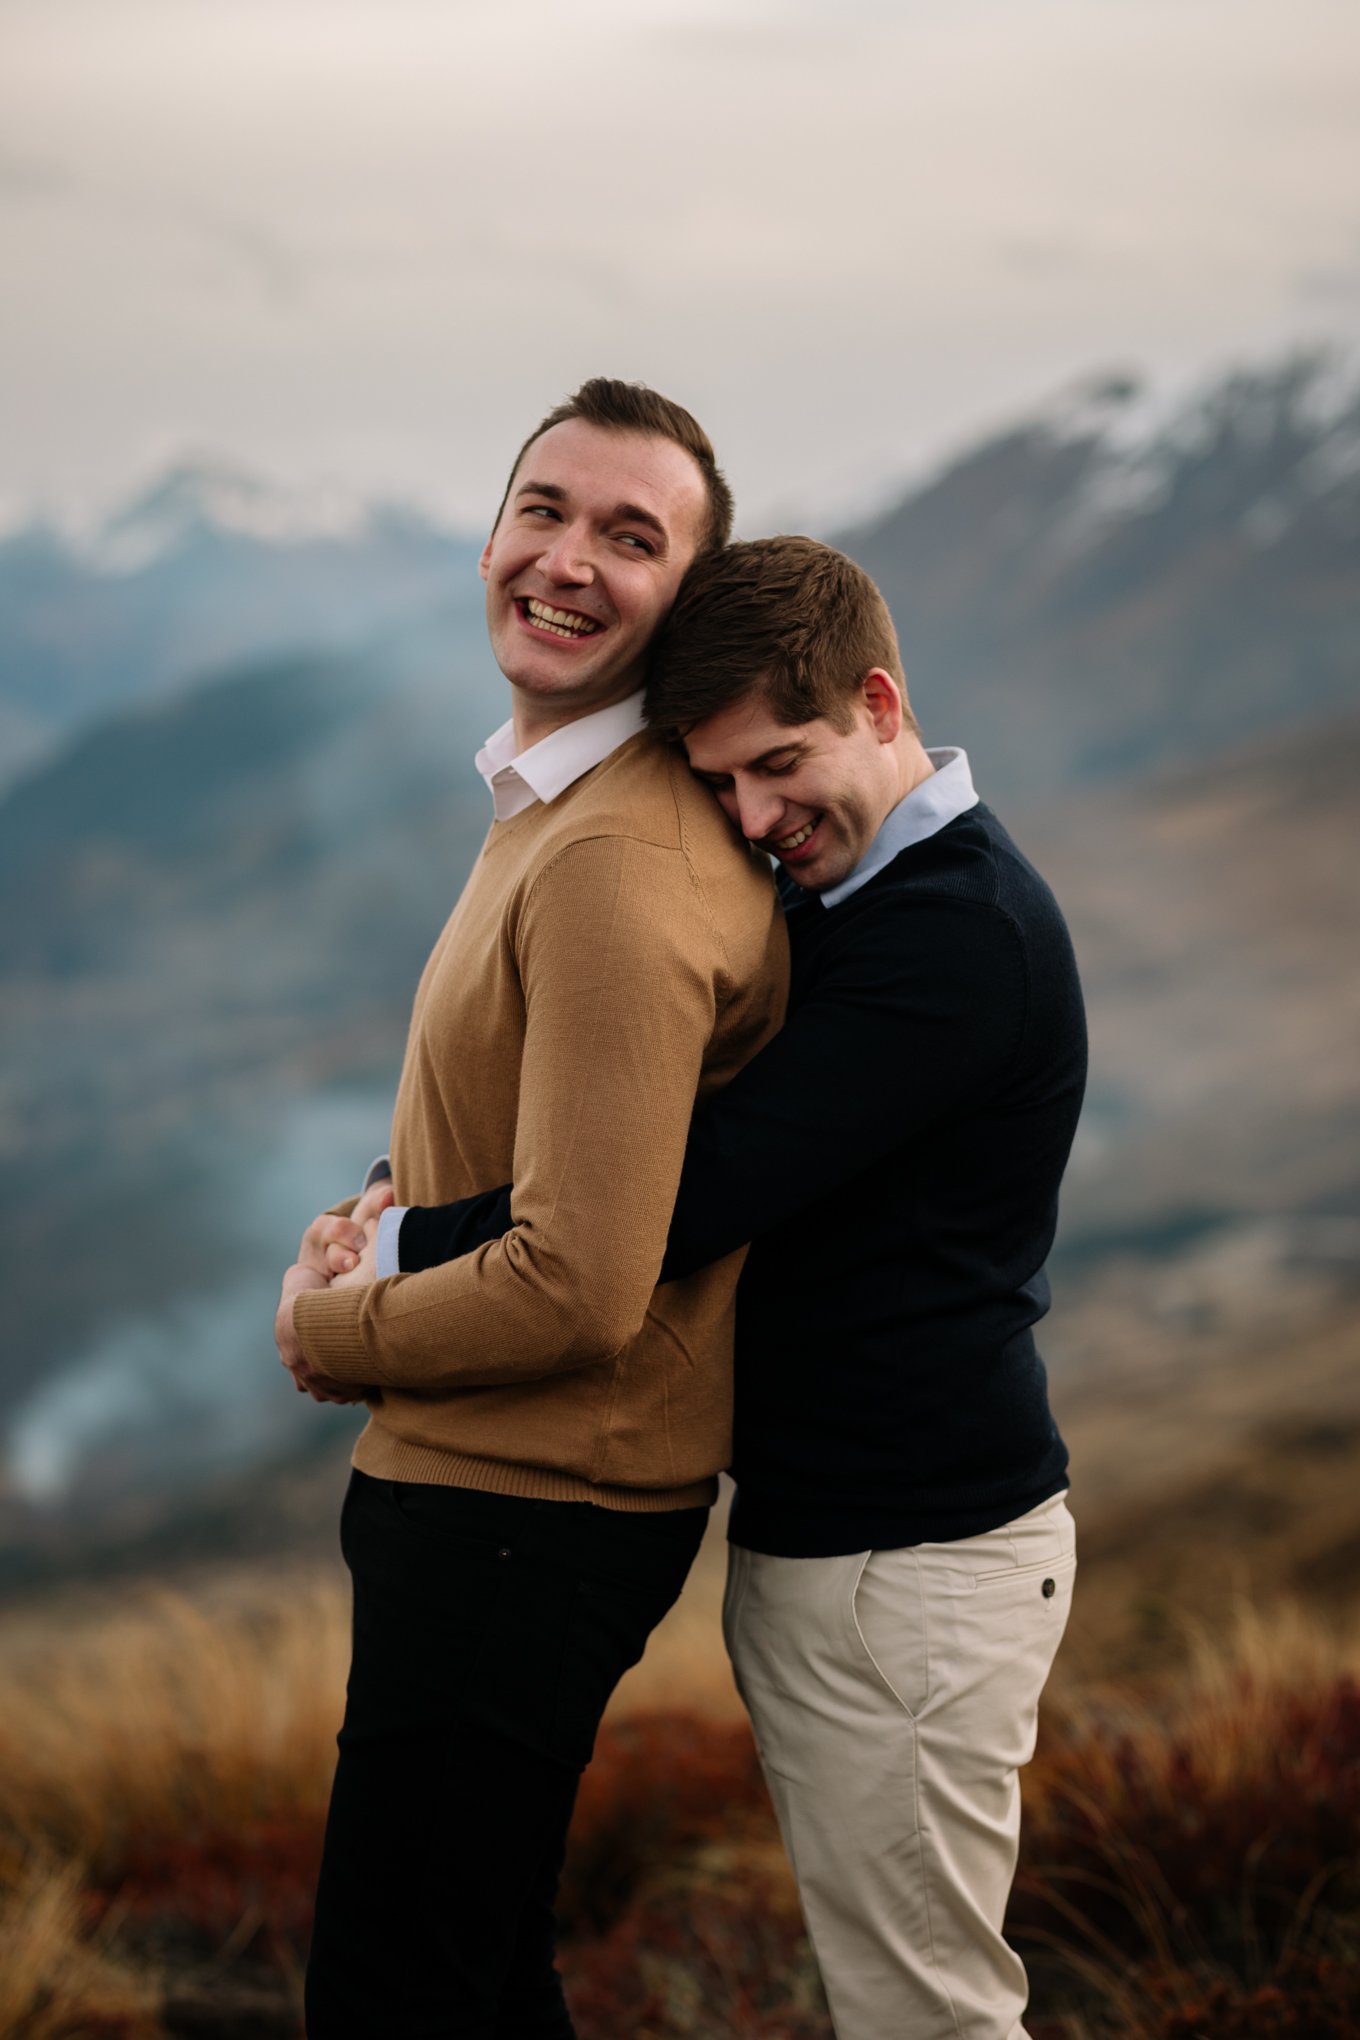 queenstownengagement-56.jpg